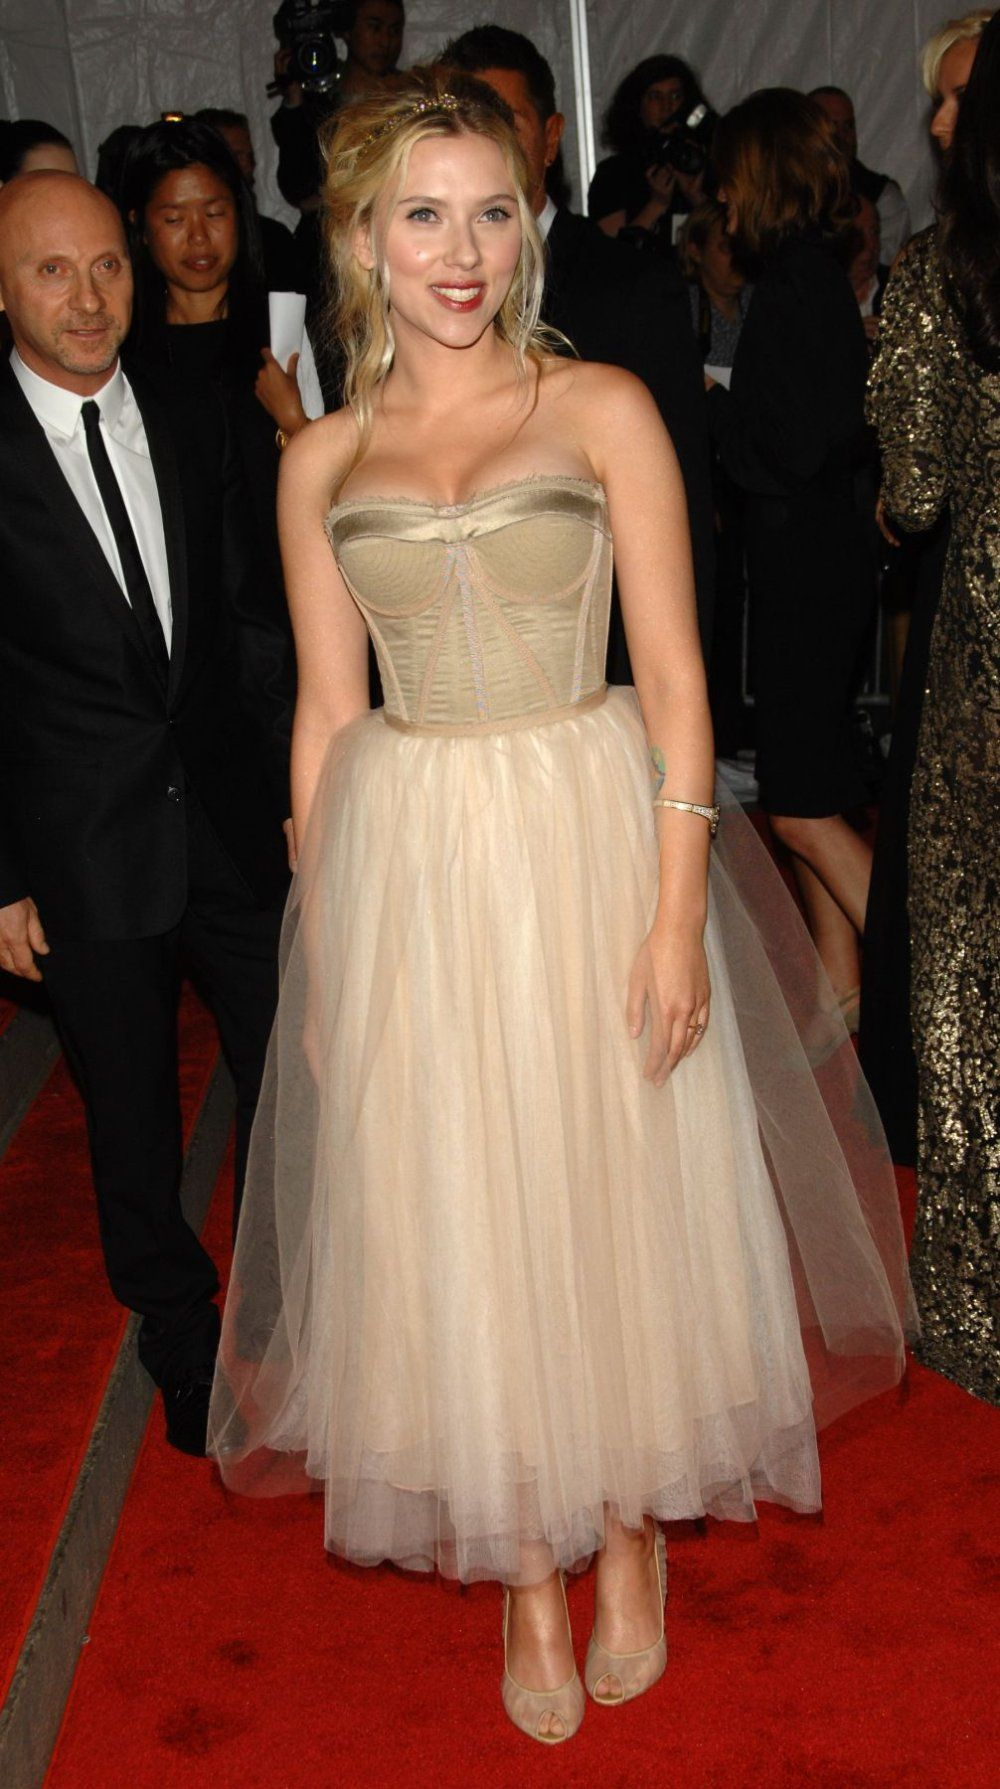 fairy princess realness...Scarlett Johansson at the Metropolitan Museum of Art's Costume Institute Gala